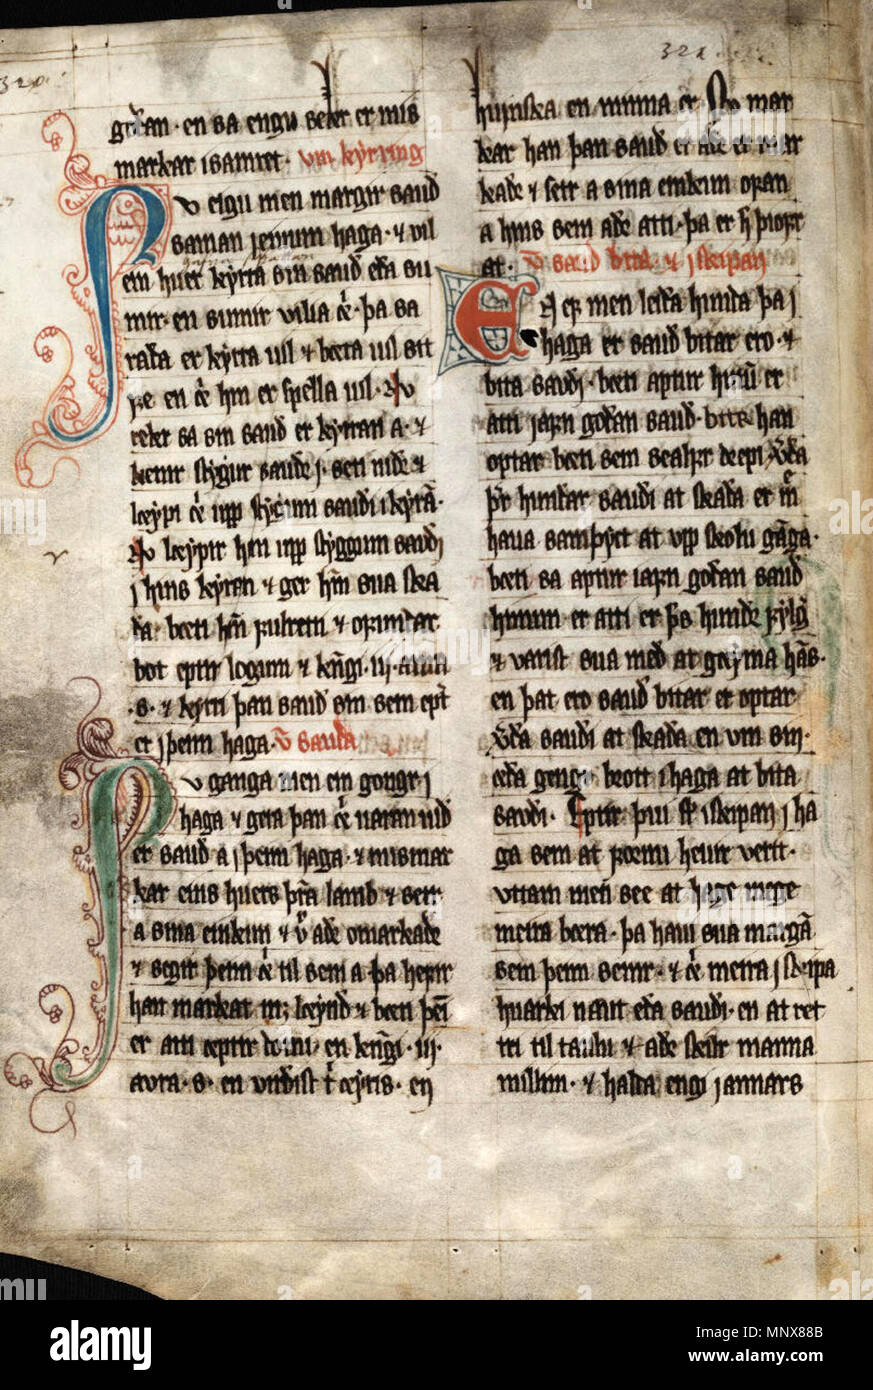 The Sheep Letter for the Faroe Islands of 24 June 1298, in the 'Book of  Lund'. 24 June 1298. Unknown 1114 Sheep Letter, p 3